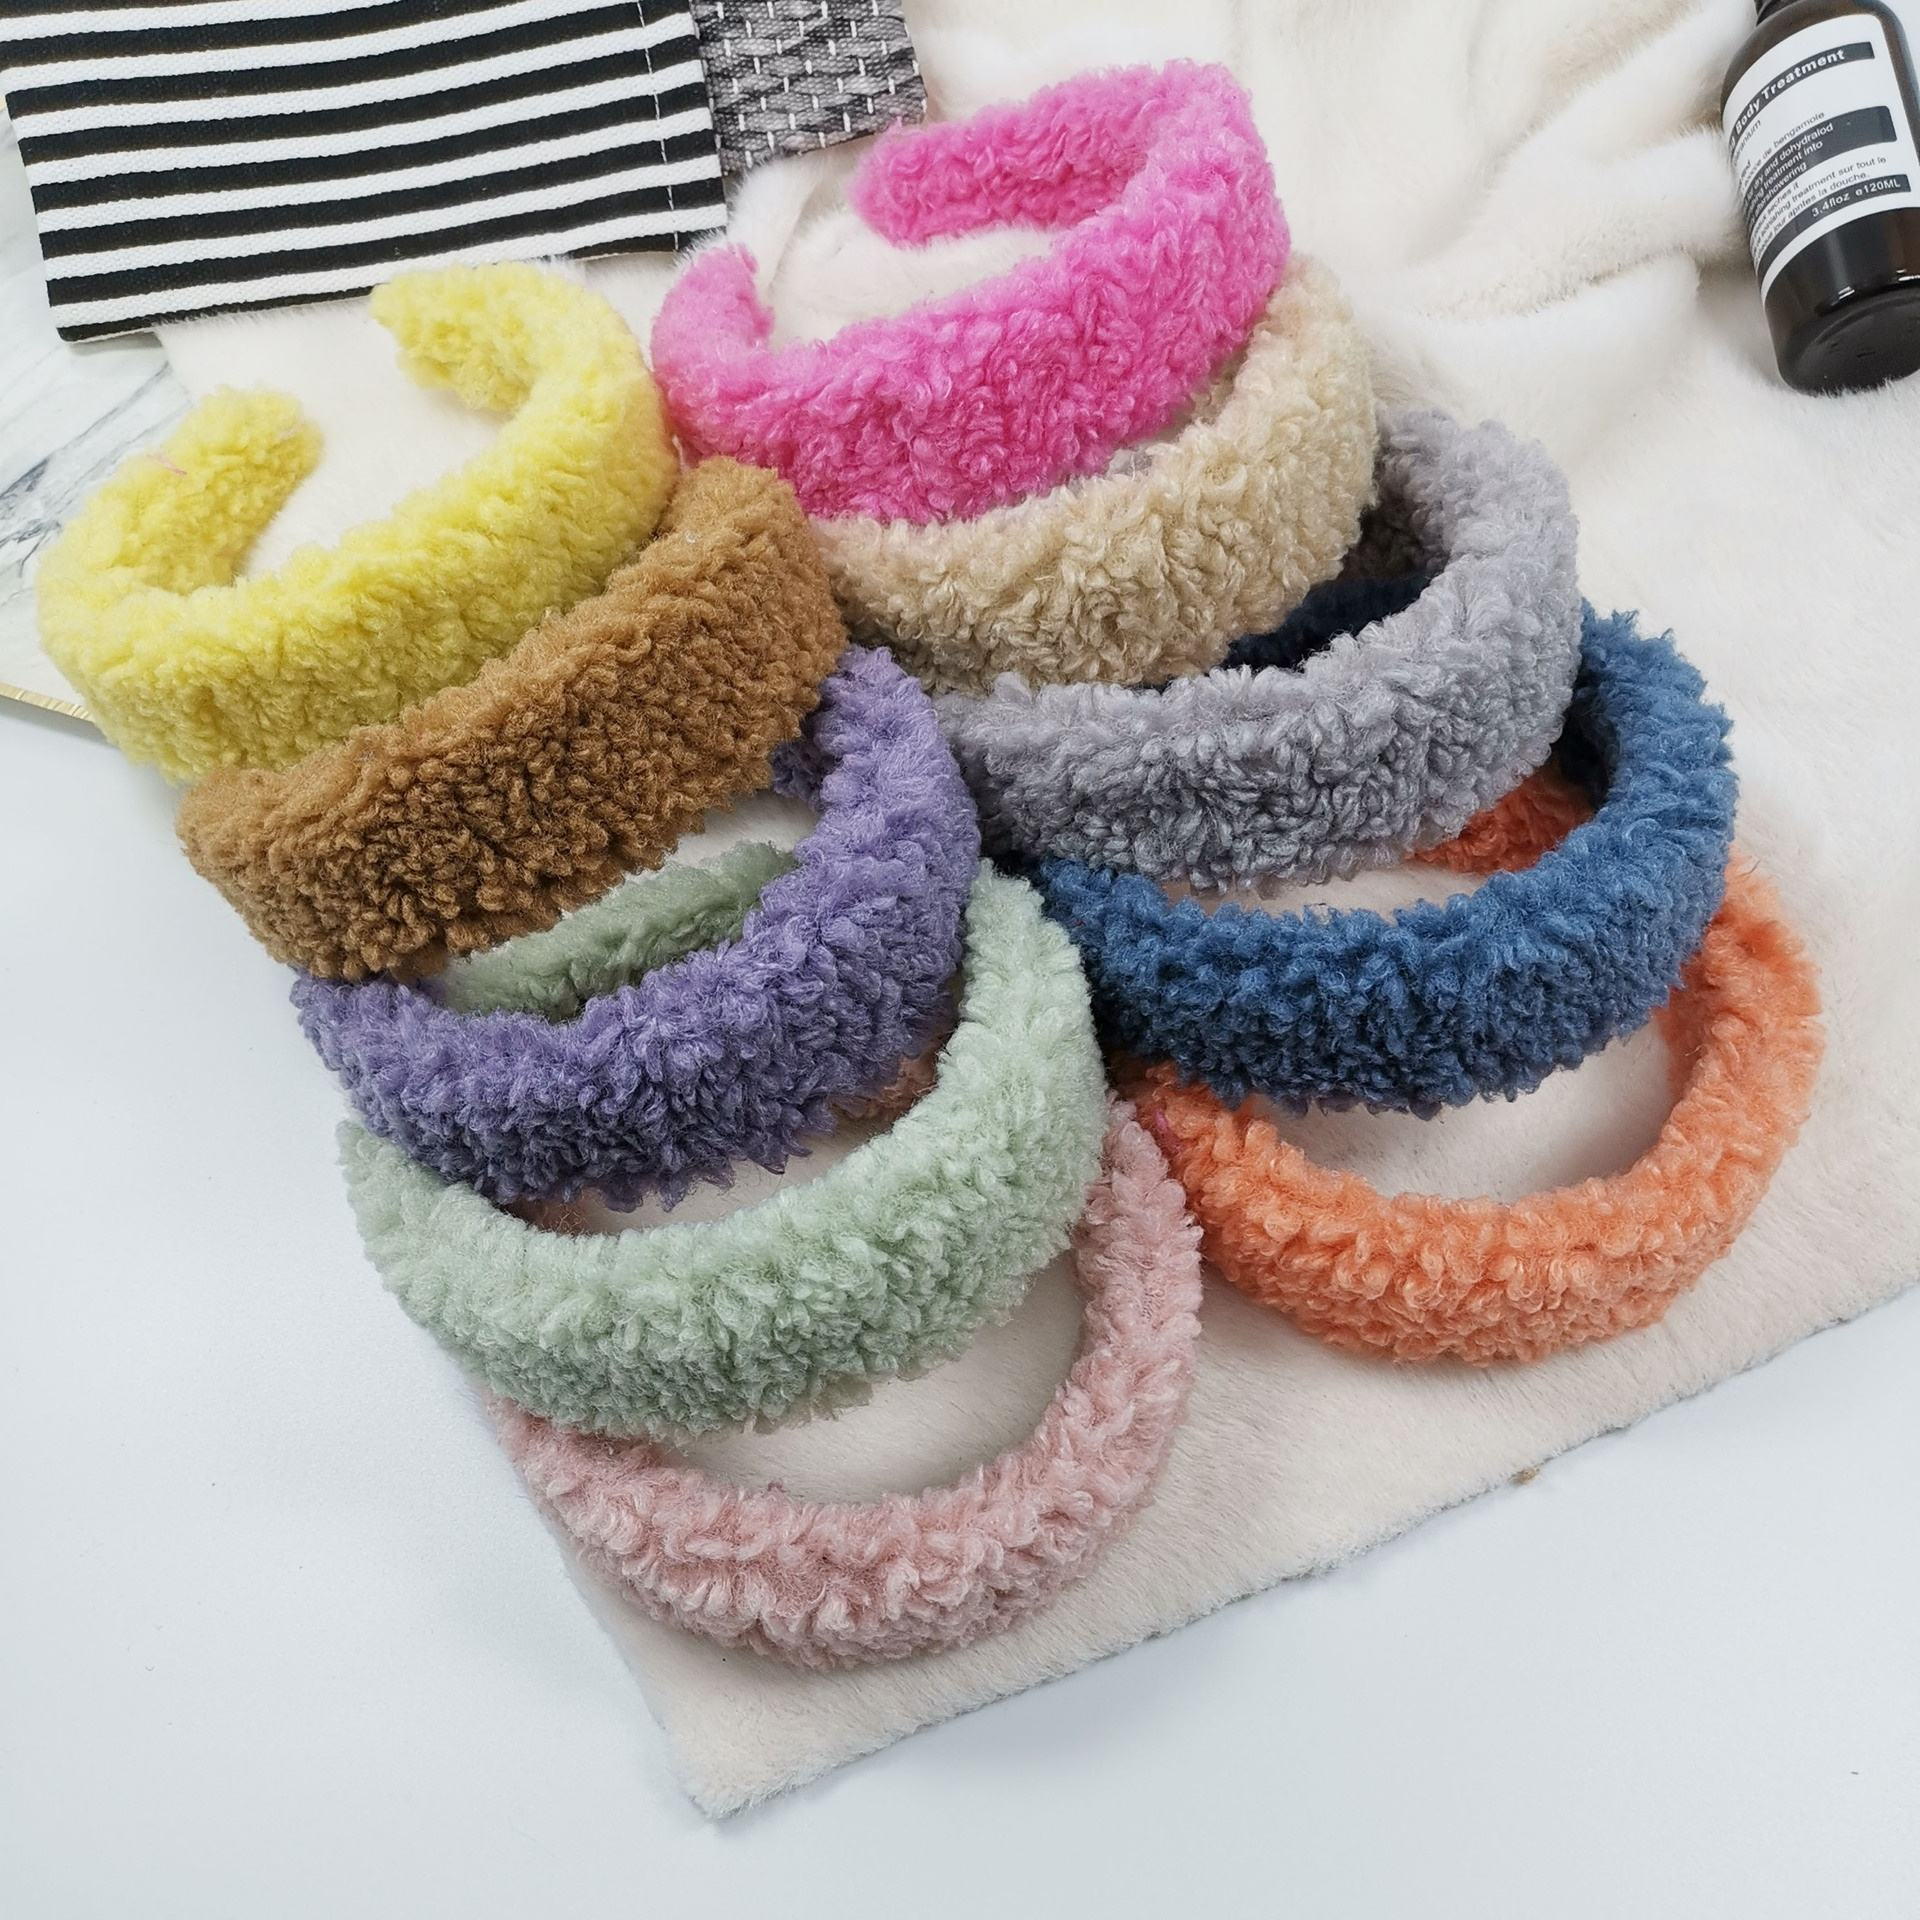 2020 New Wool Headband Winter Hairband Keep Warm Ins Candy Colors Hair Accessories Wide Plush Fur Headband